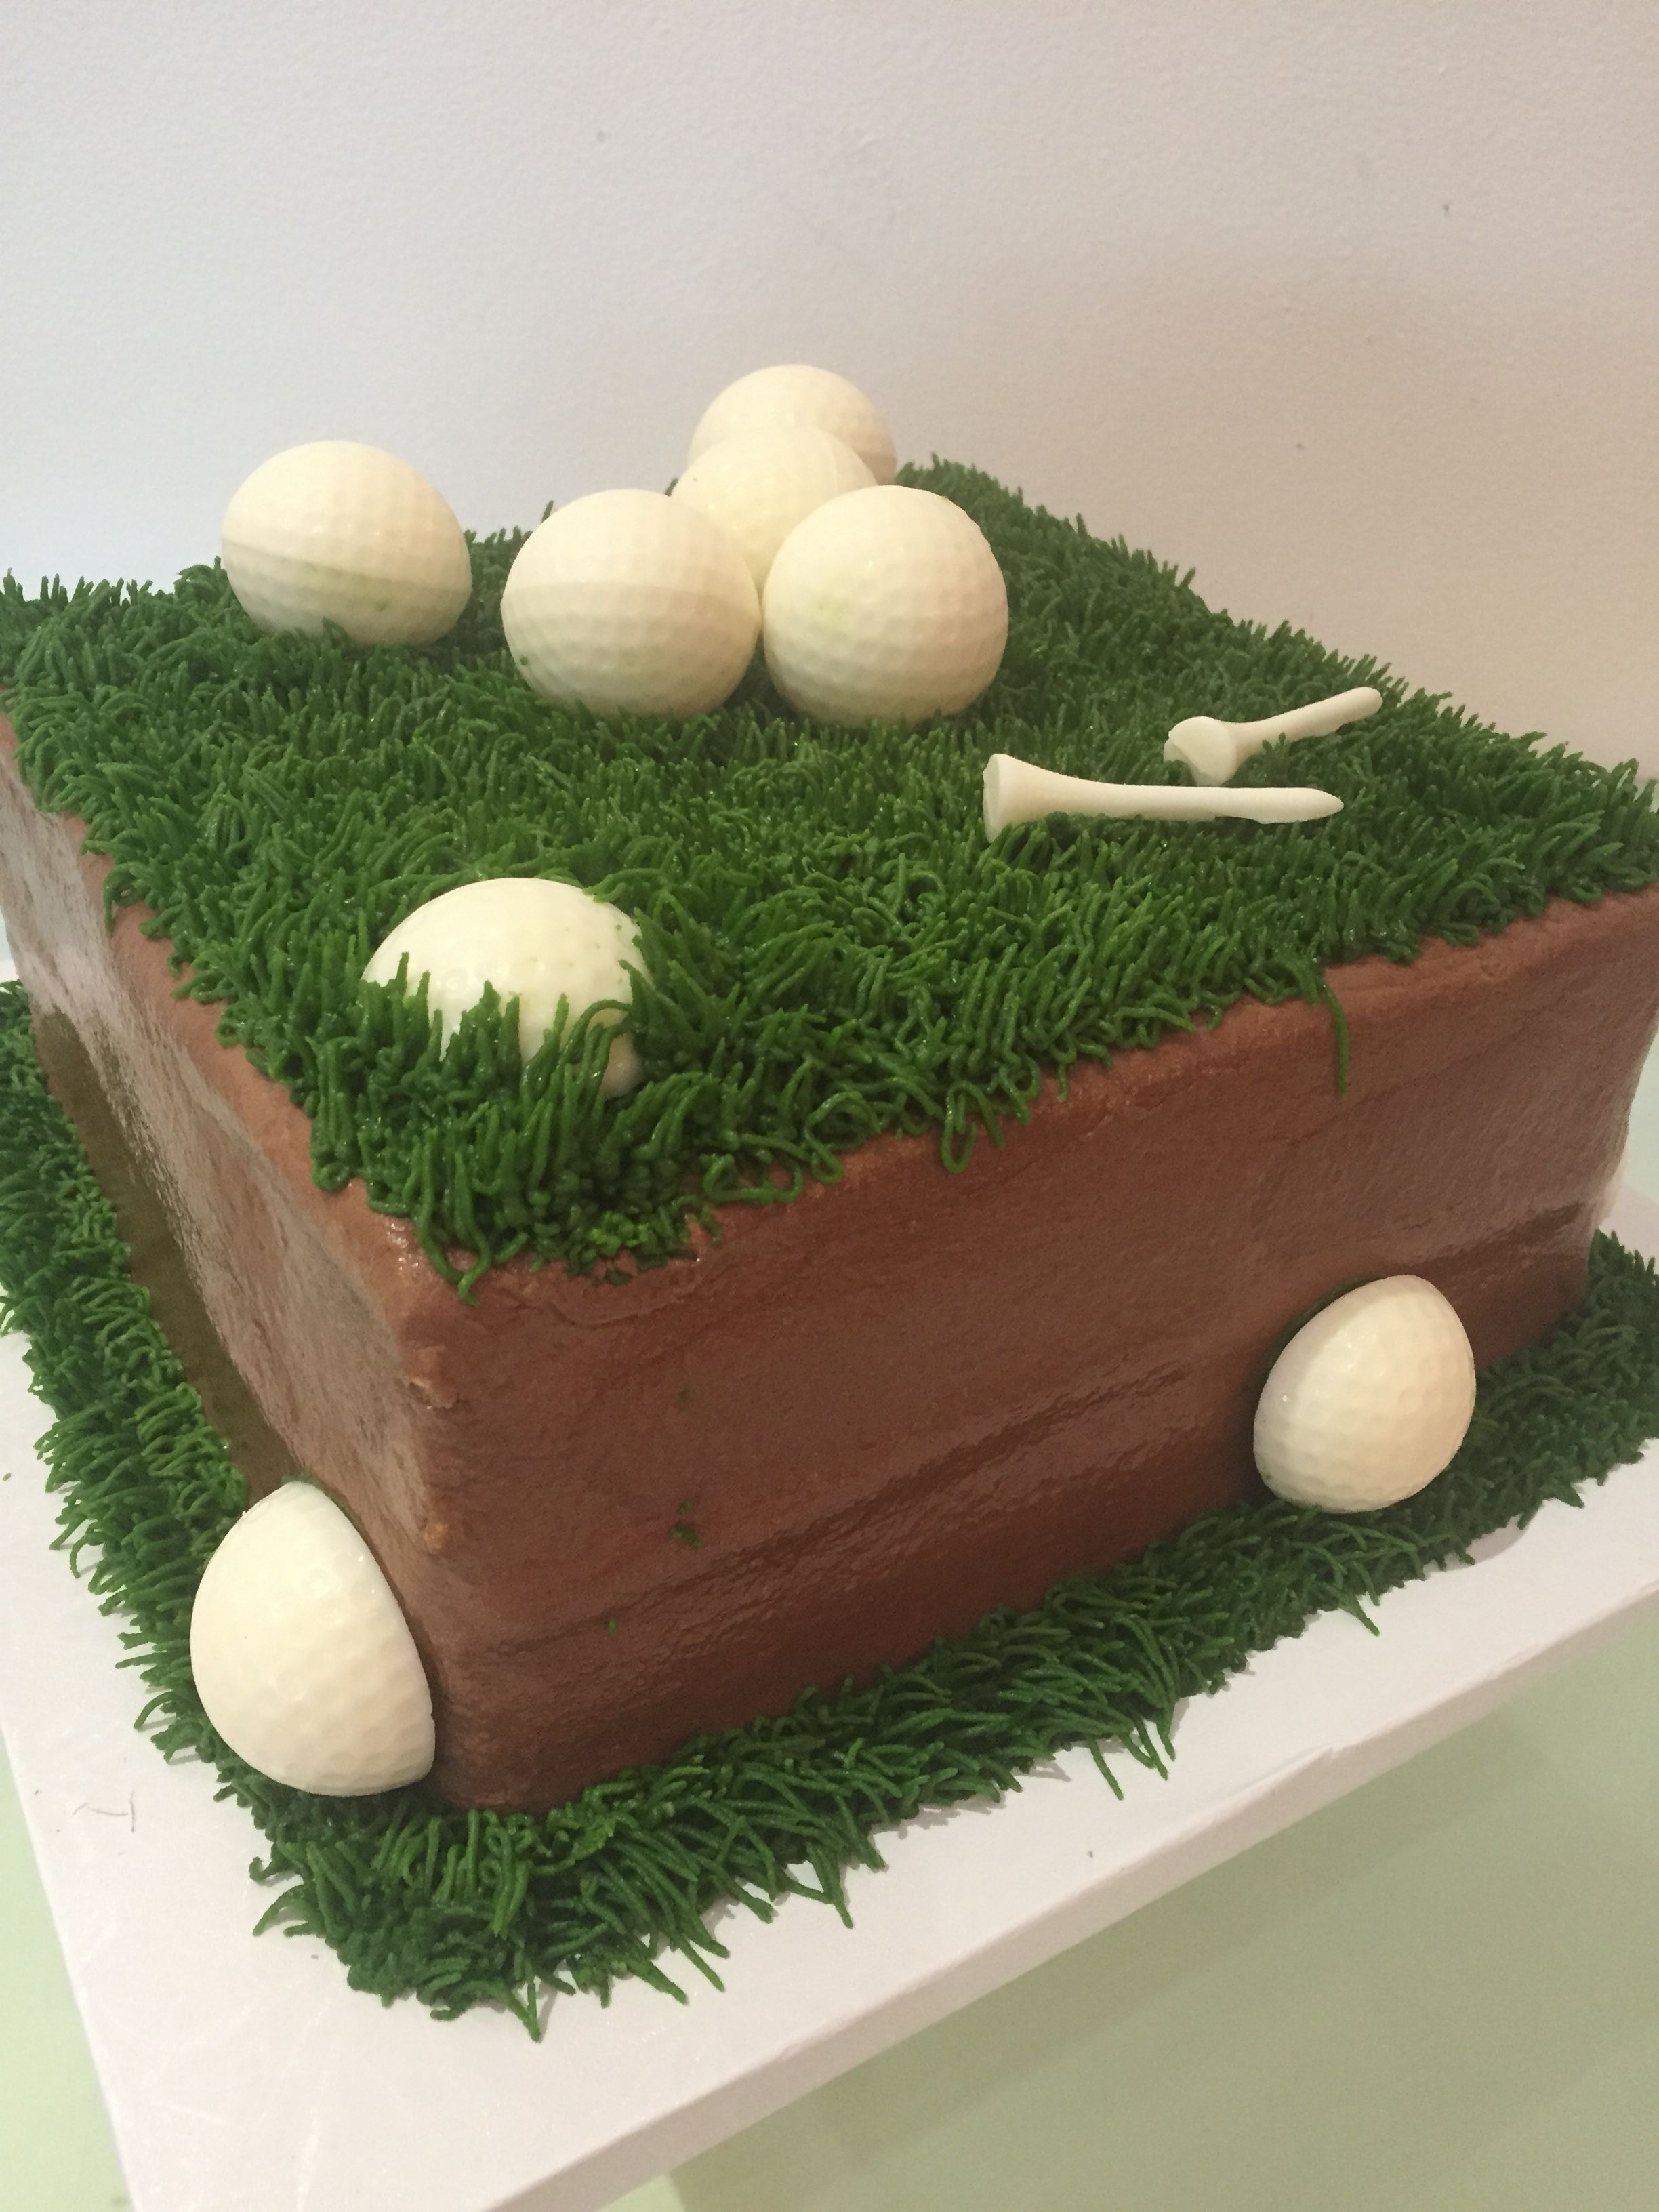 Grooms Cake For Your Golfer Cake Was Created By Icing On The Cake - Crazy cake designs lego grooms cake design